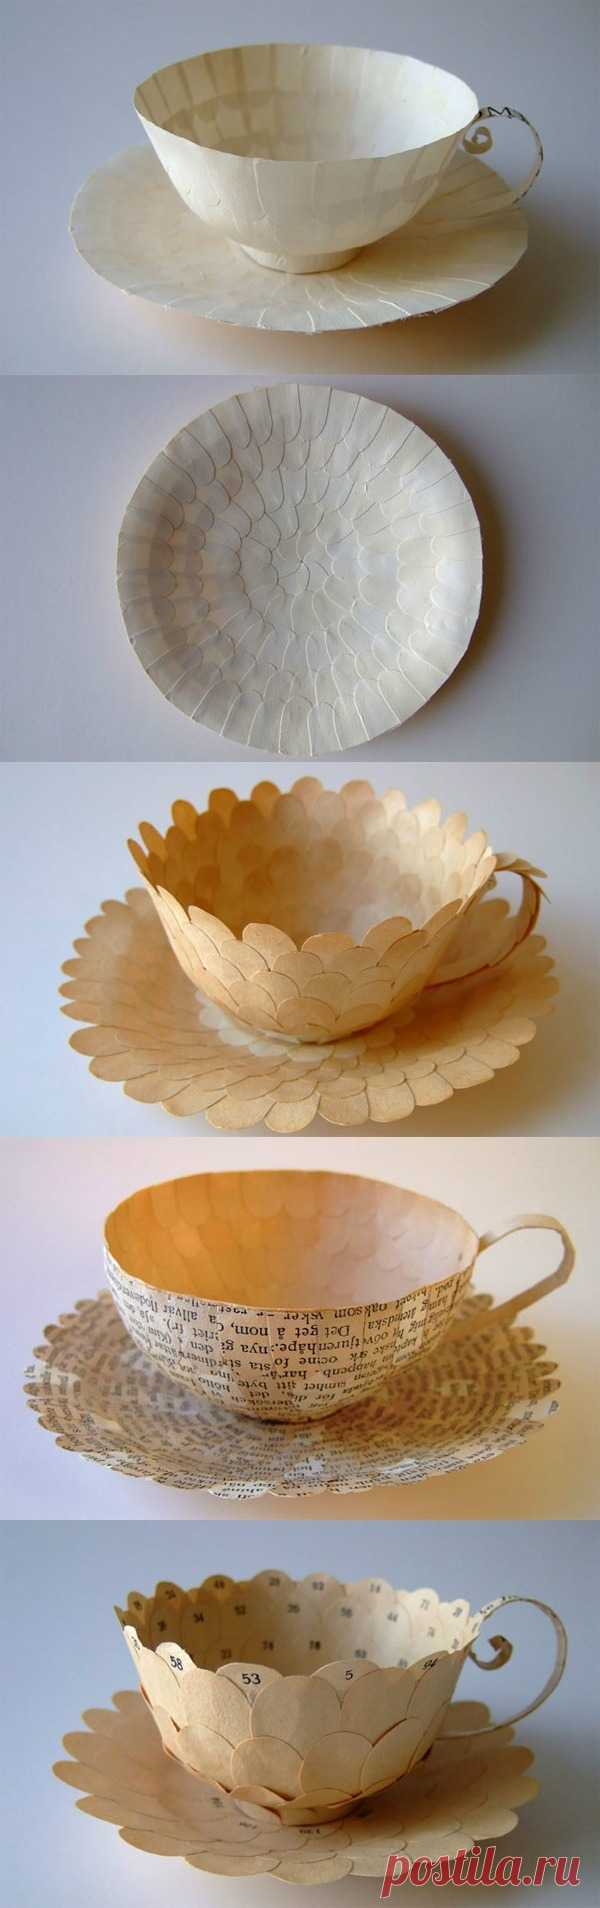 Whether there can be disposable tableware beautiful?